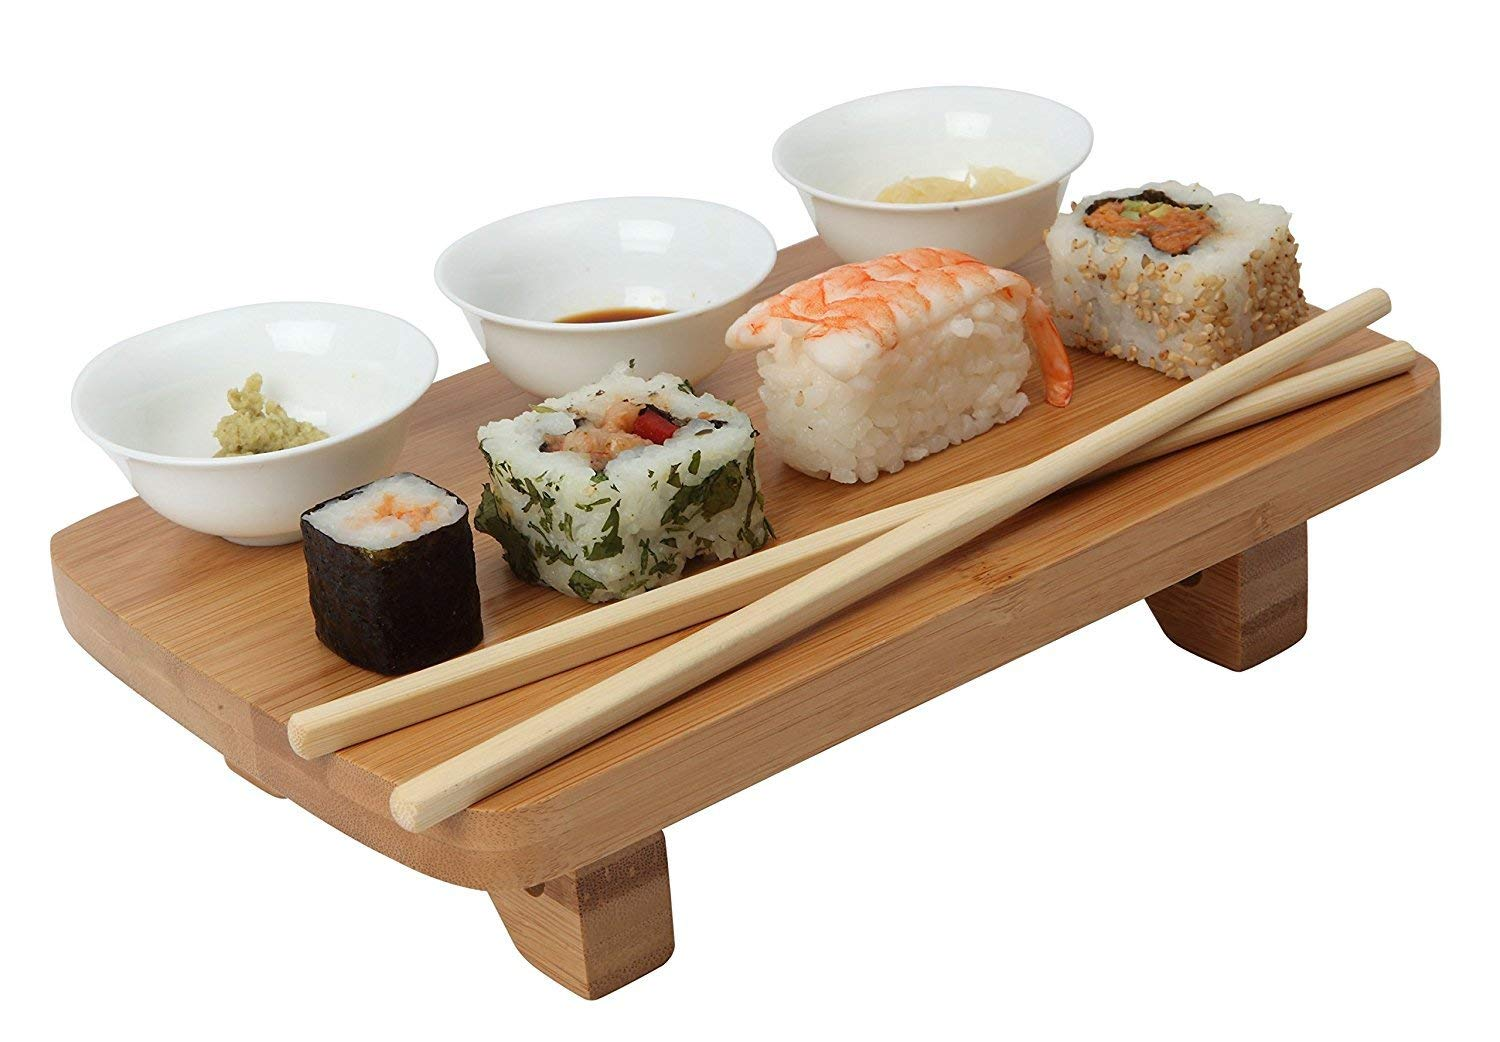 Dexam Bamboo Sushi Serving Kit Set, including Bowls, Table & Chopsticks